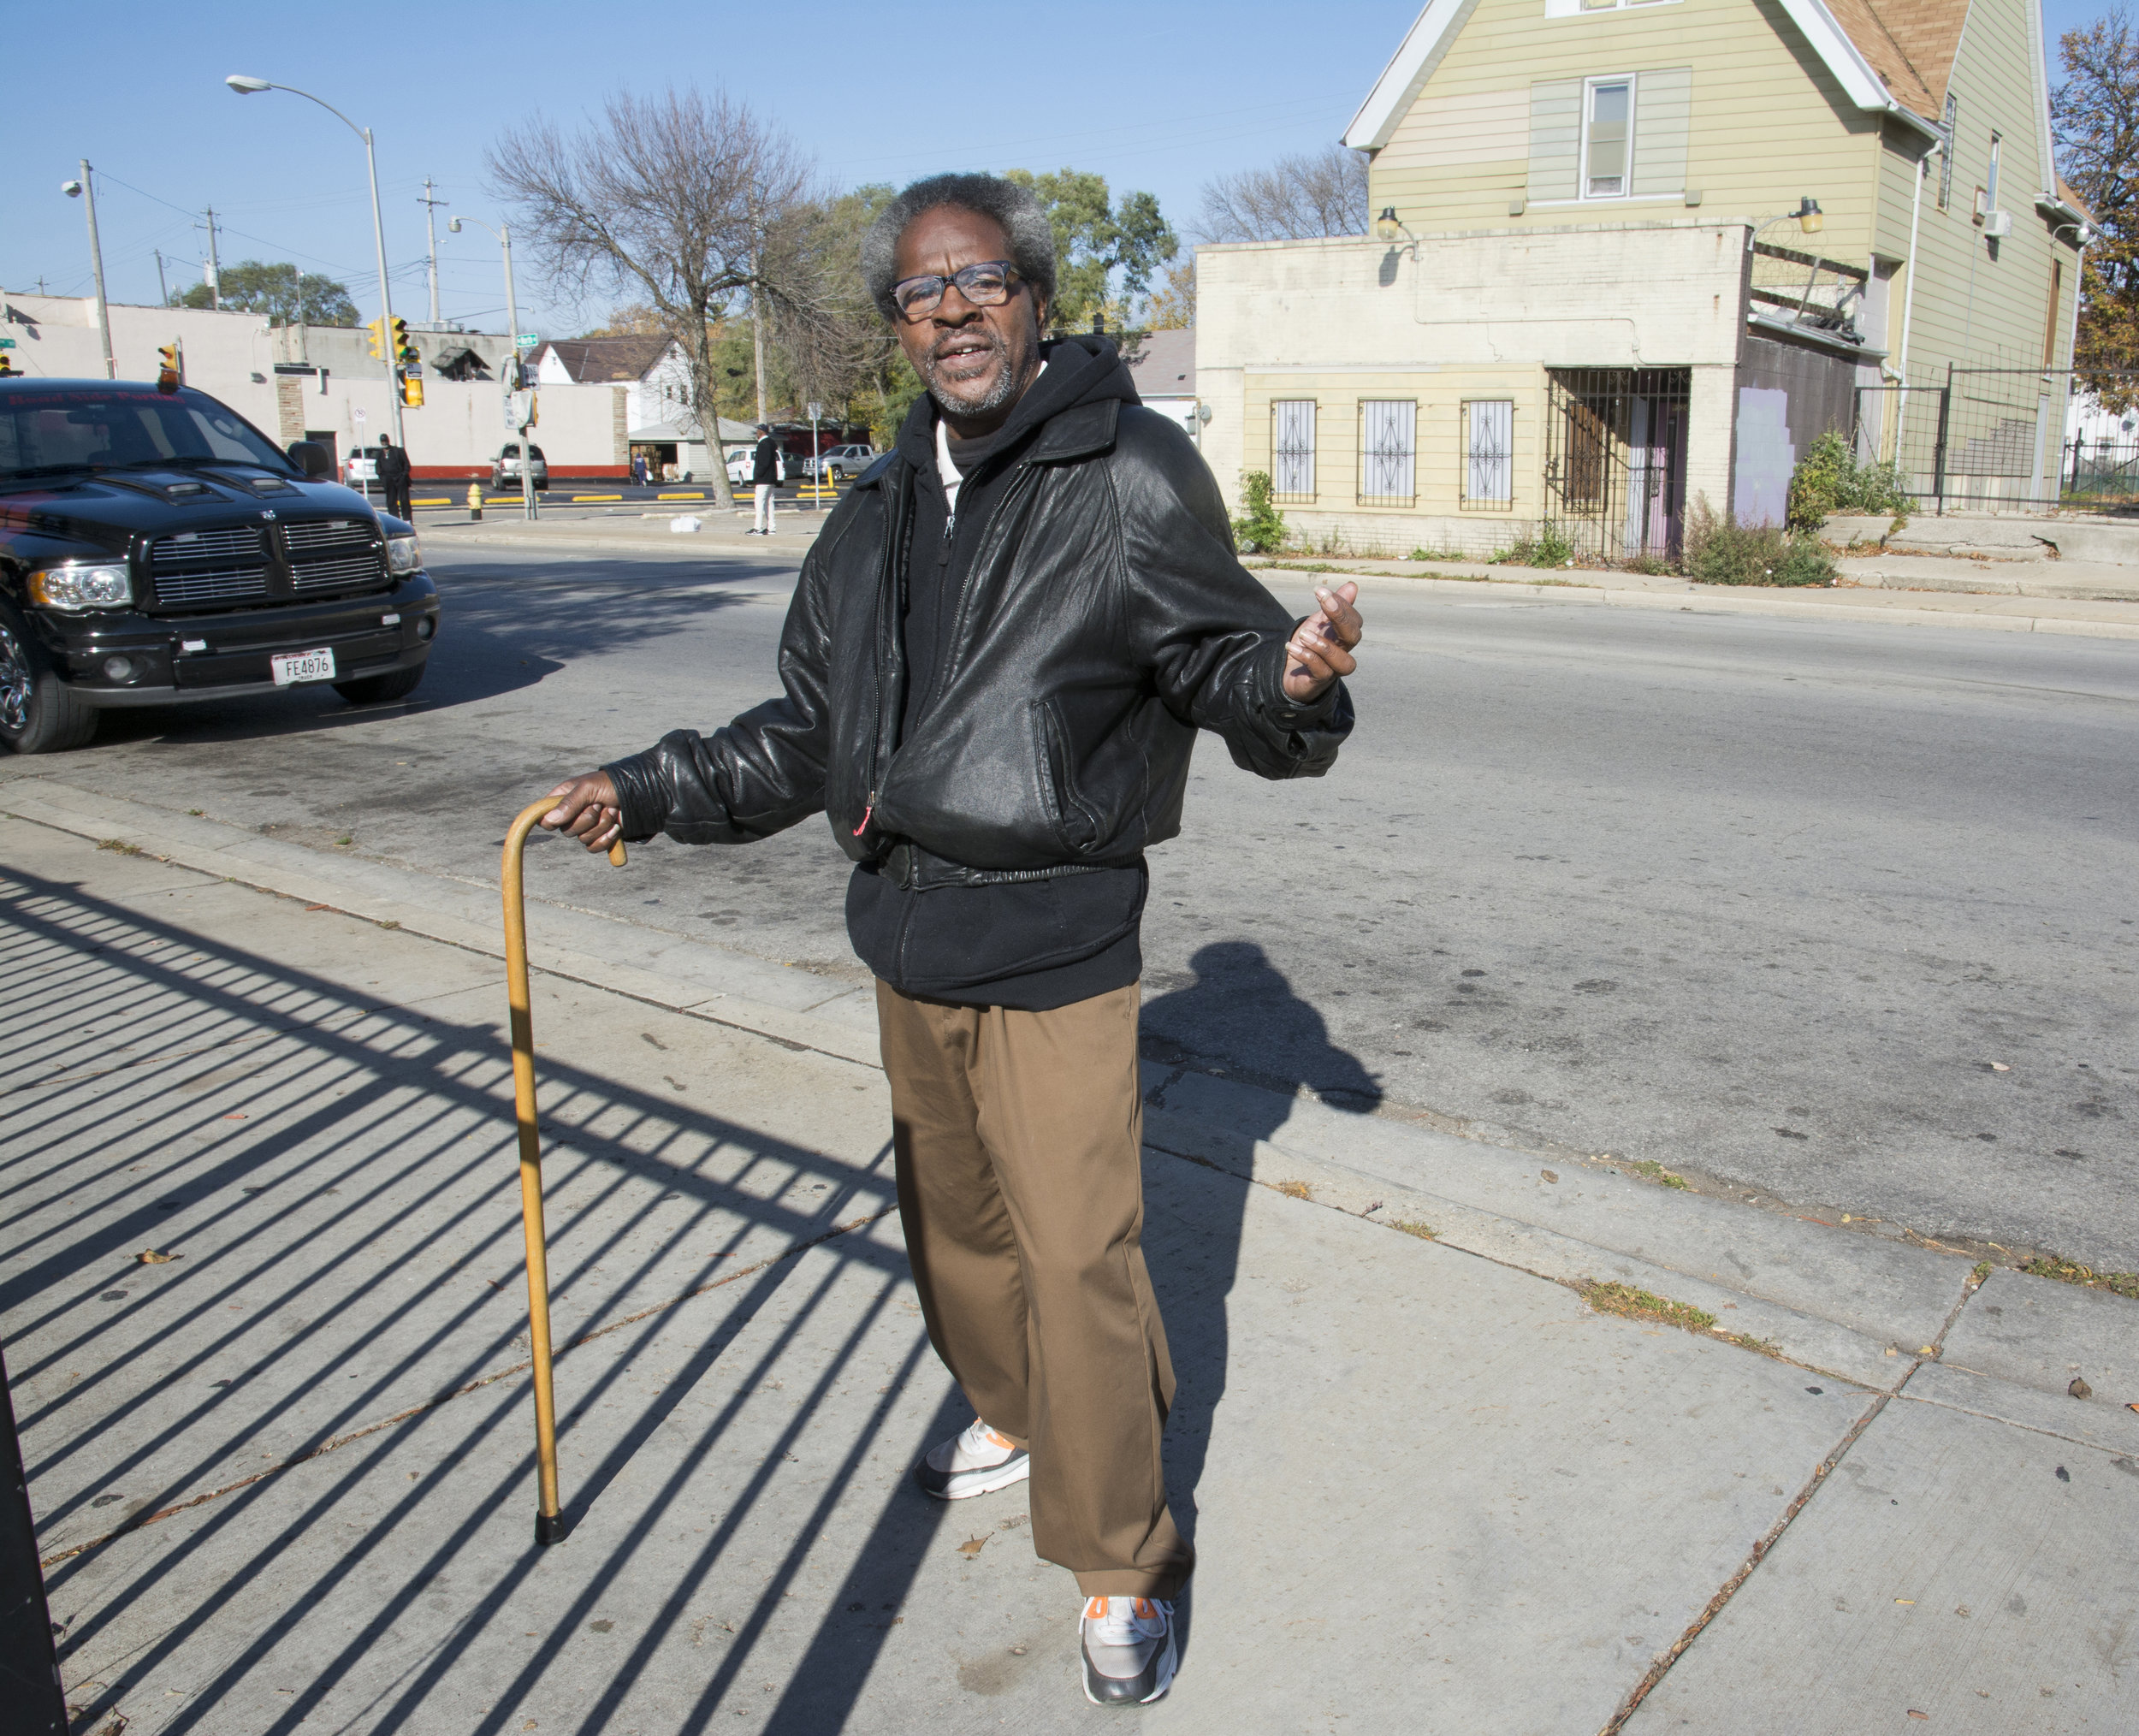 """George Brown, 50, is still alive after 3 strokes. As a younger man, he worked at Galst Foods market. """"My old neighborhood has changed for the worse,"""" he said, shaking his head. """"Too many drugs and thieves, even murders."""" Most mornings, he stops by the liquor store to visit with his cousins."""